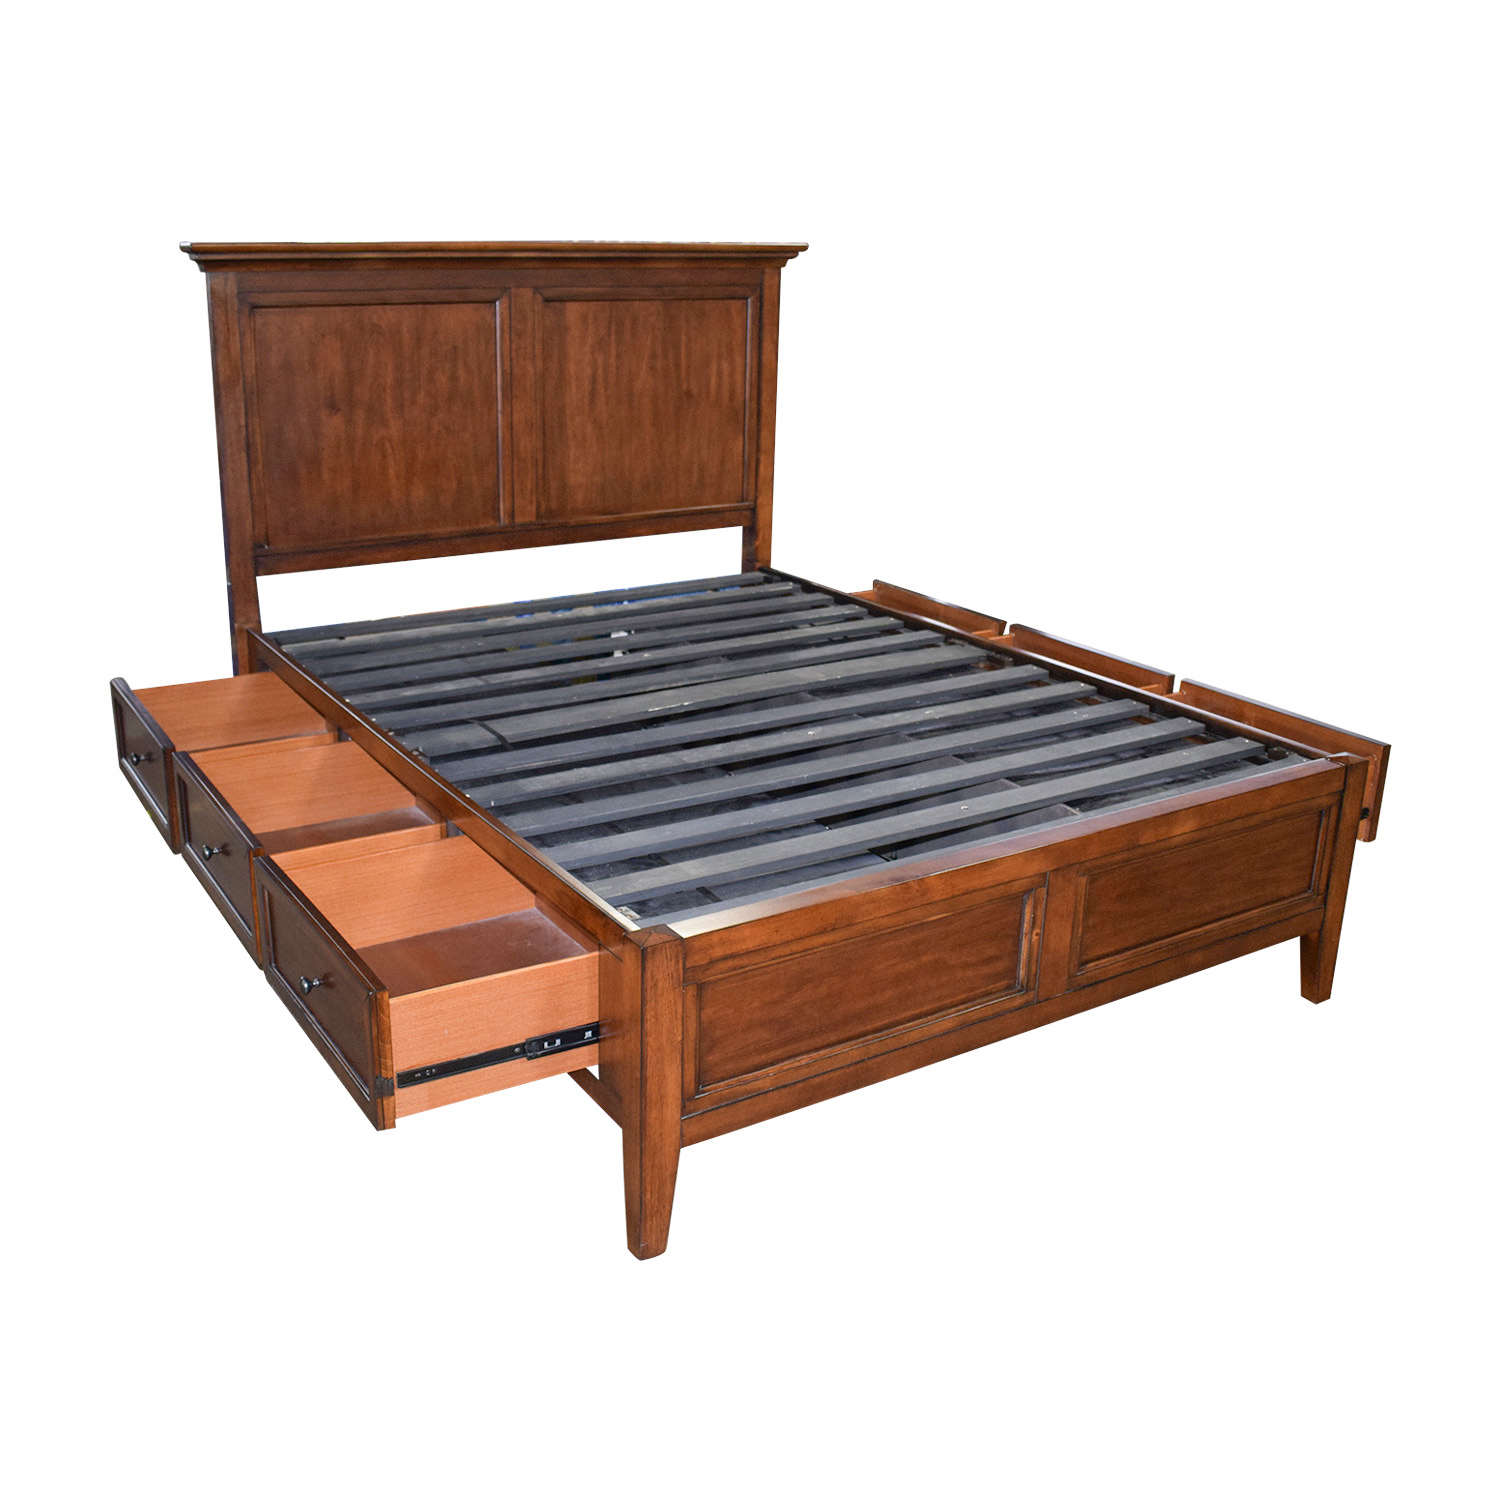 62 off macy s macy s six drawer wood queen bed frame beds 10236 | second hand macys six drawer wood queen bed frame